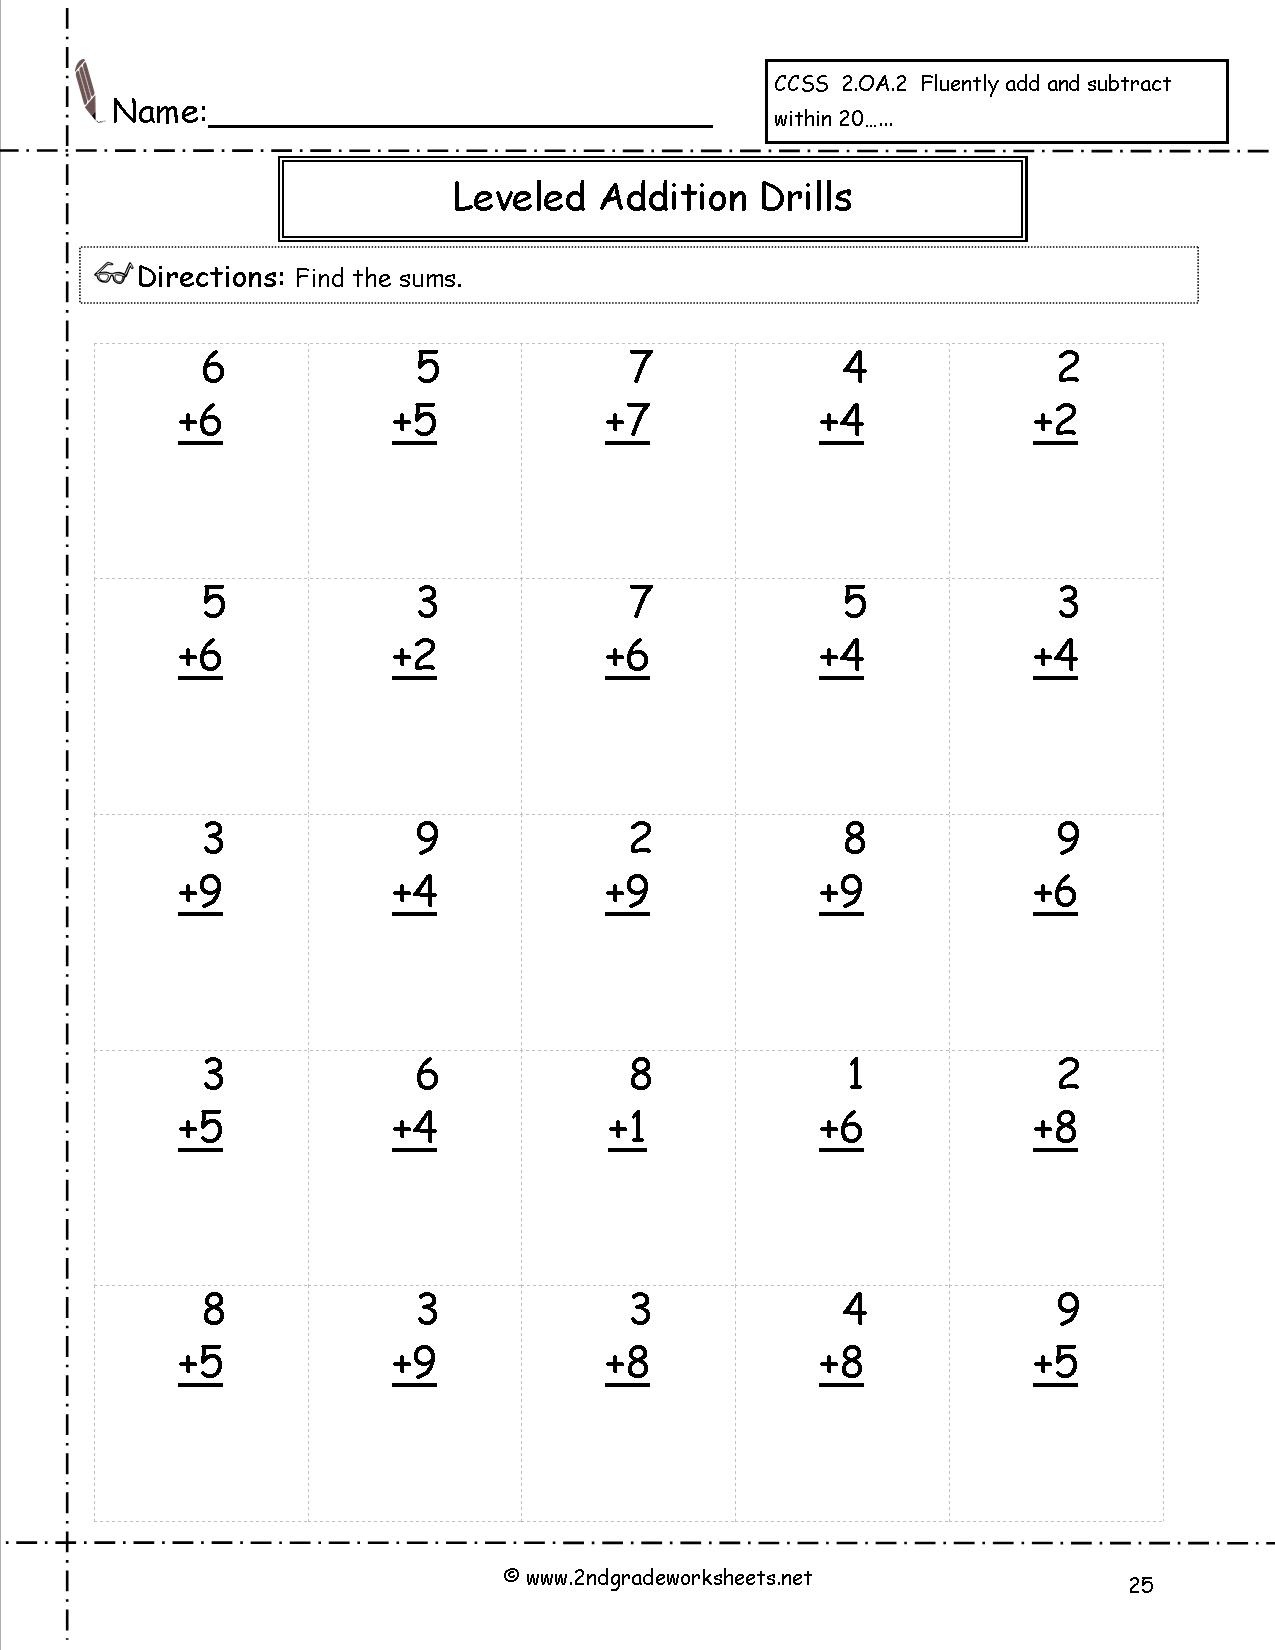 Free Math Worksheets And Printouts - Free Printable Second Grade Worksheets